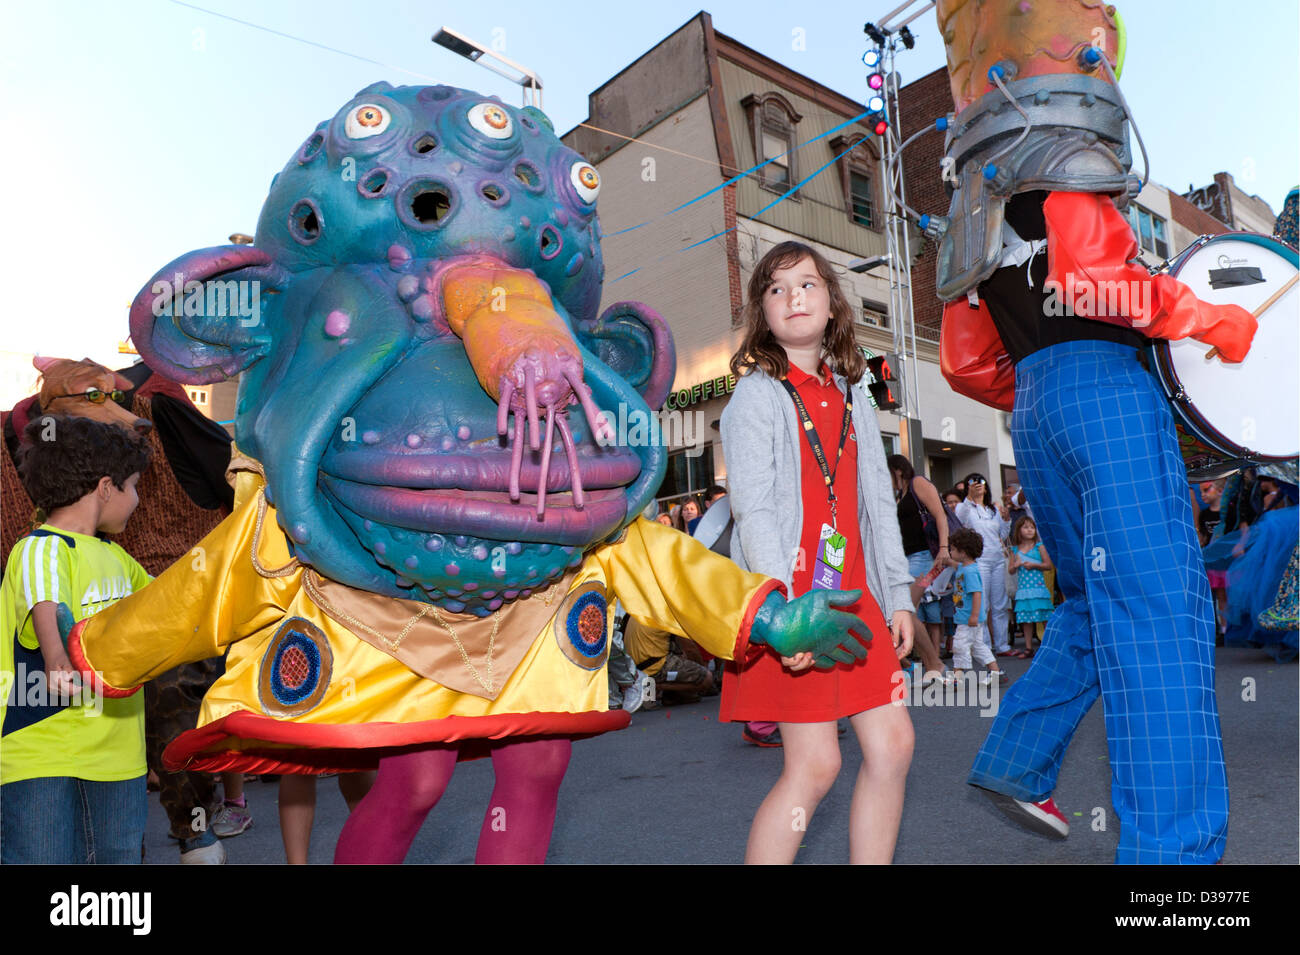 big-nazo-masked-musicians-dancing-on-the-street-with-children-during-D3977E.jpg